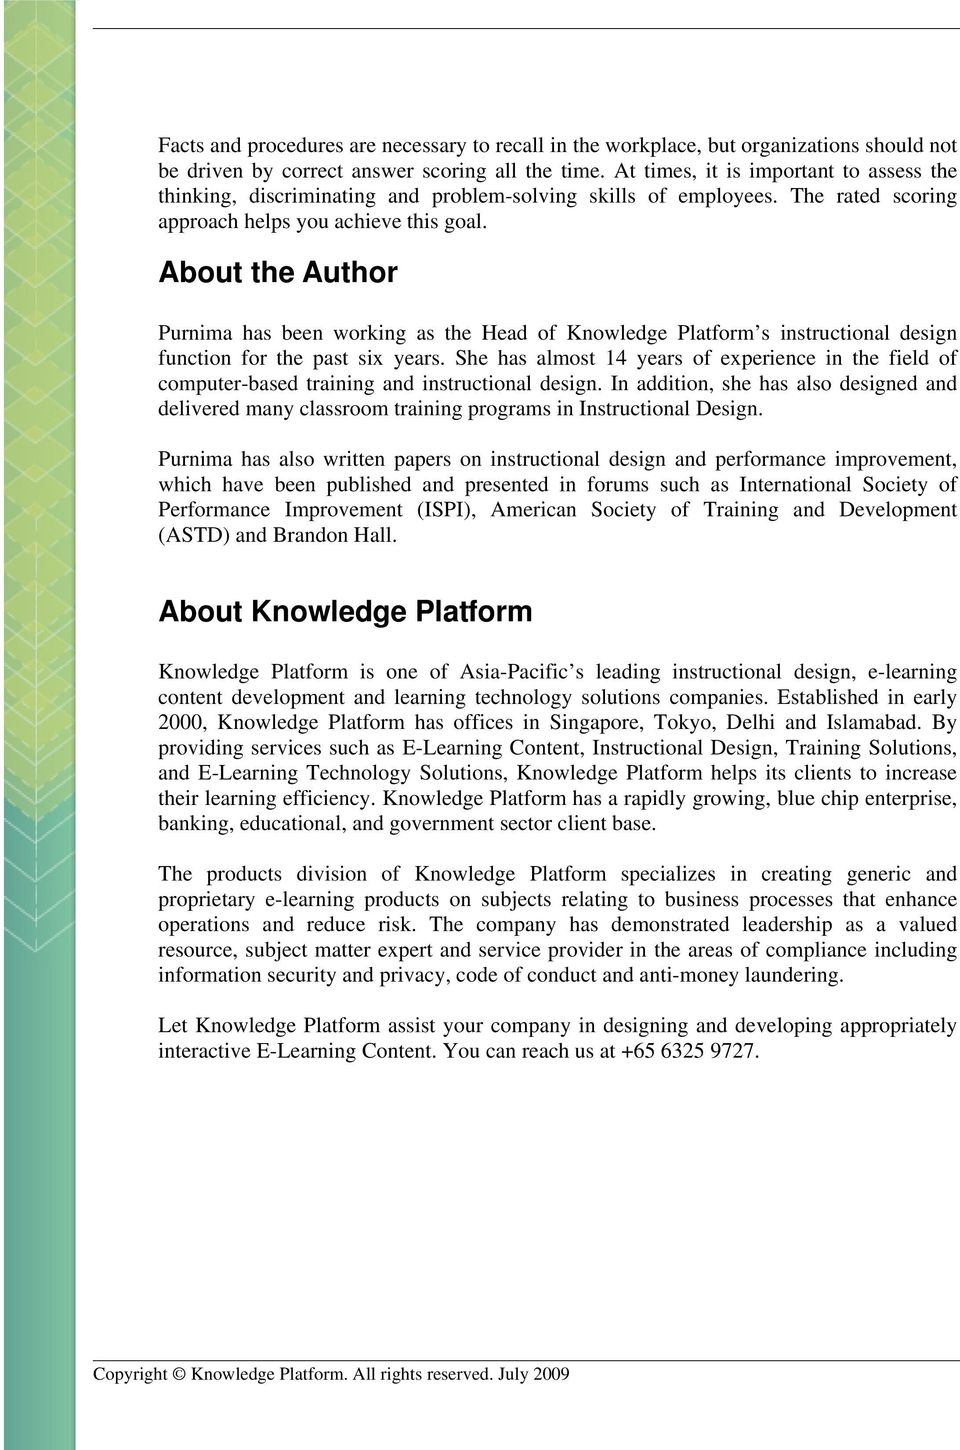 About the Author Purnima has been working as the Head of Knowledge Platform s instructional design function for the past six years.